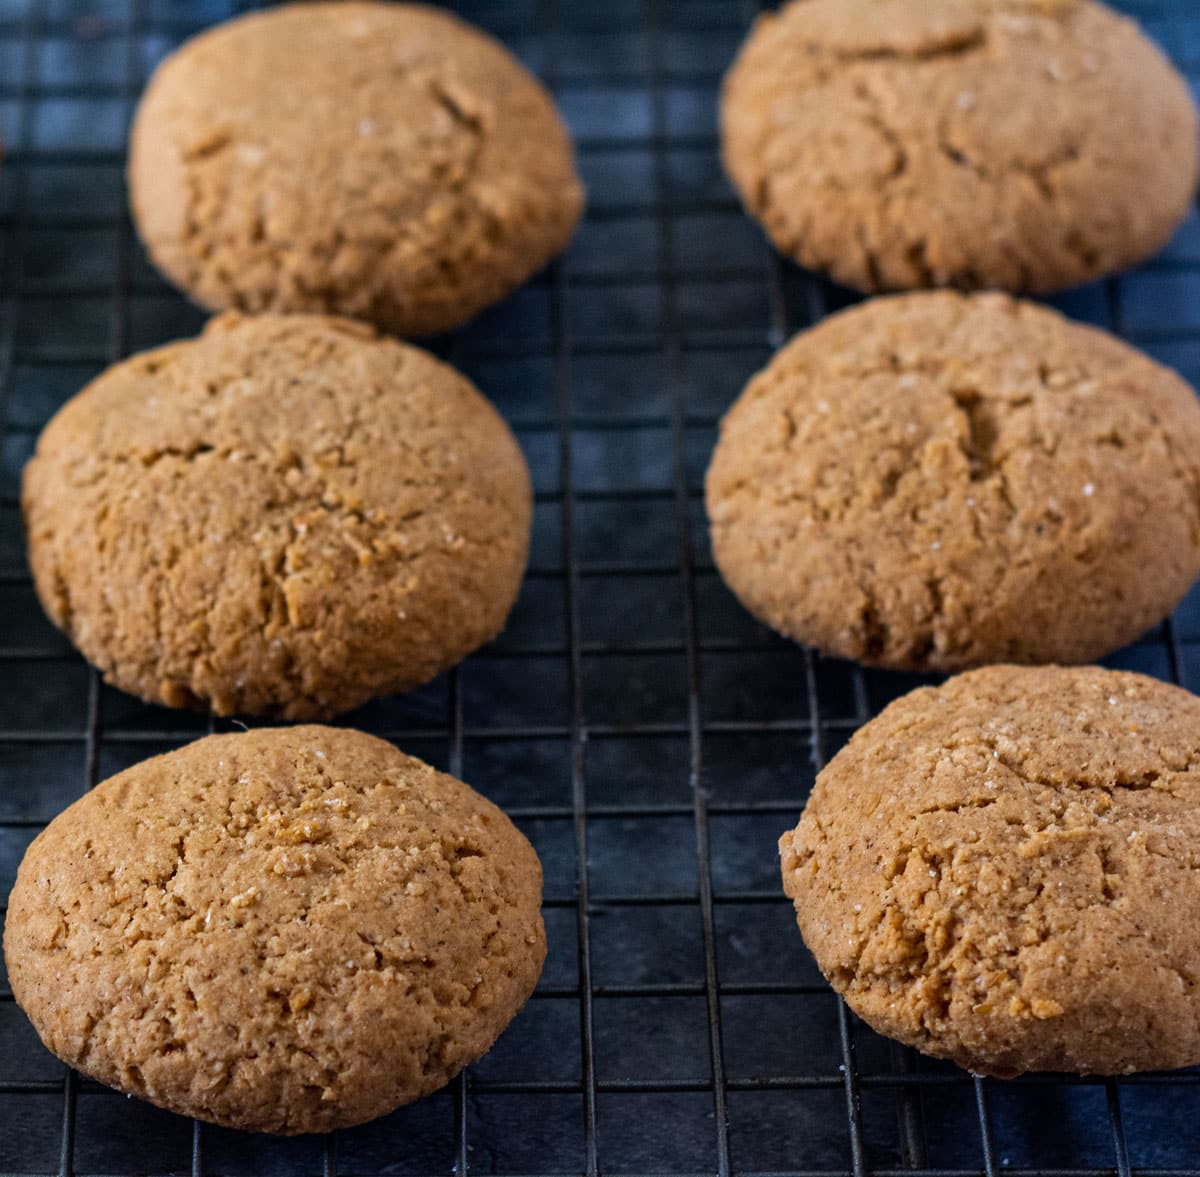 Closeup vegan gingerbread cookies on a dark plate, with a grey napkin on a grey marbled background